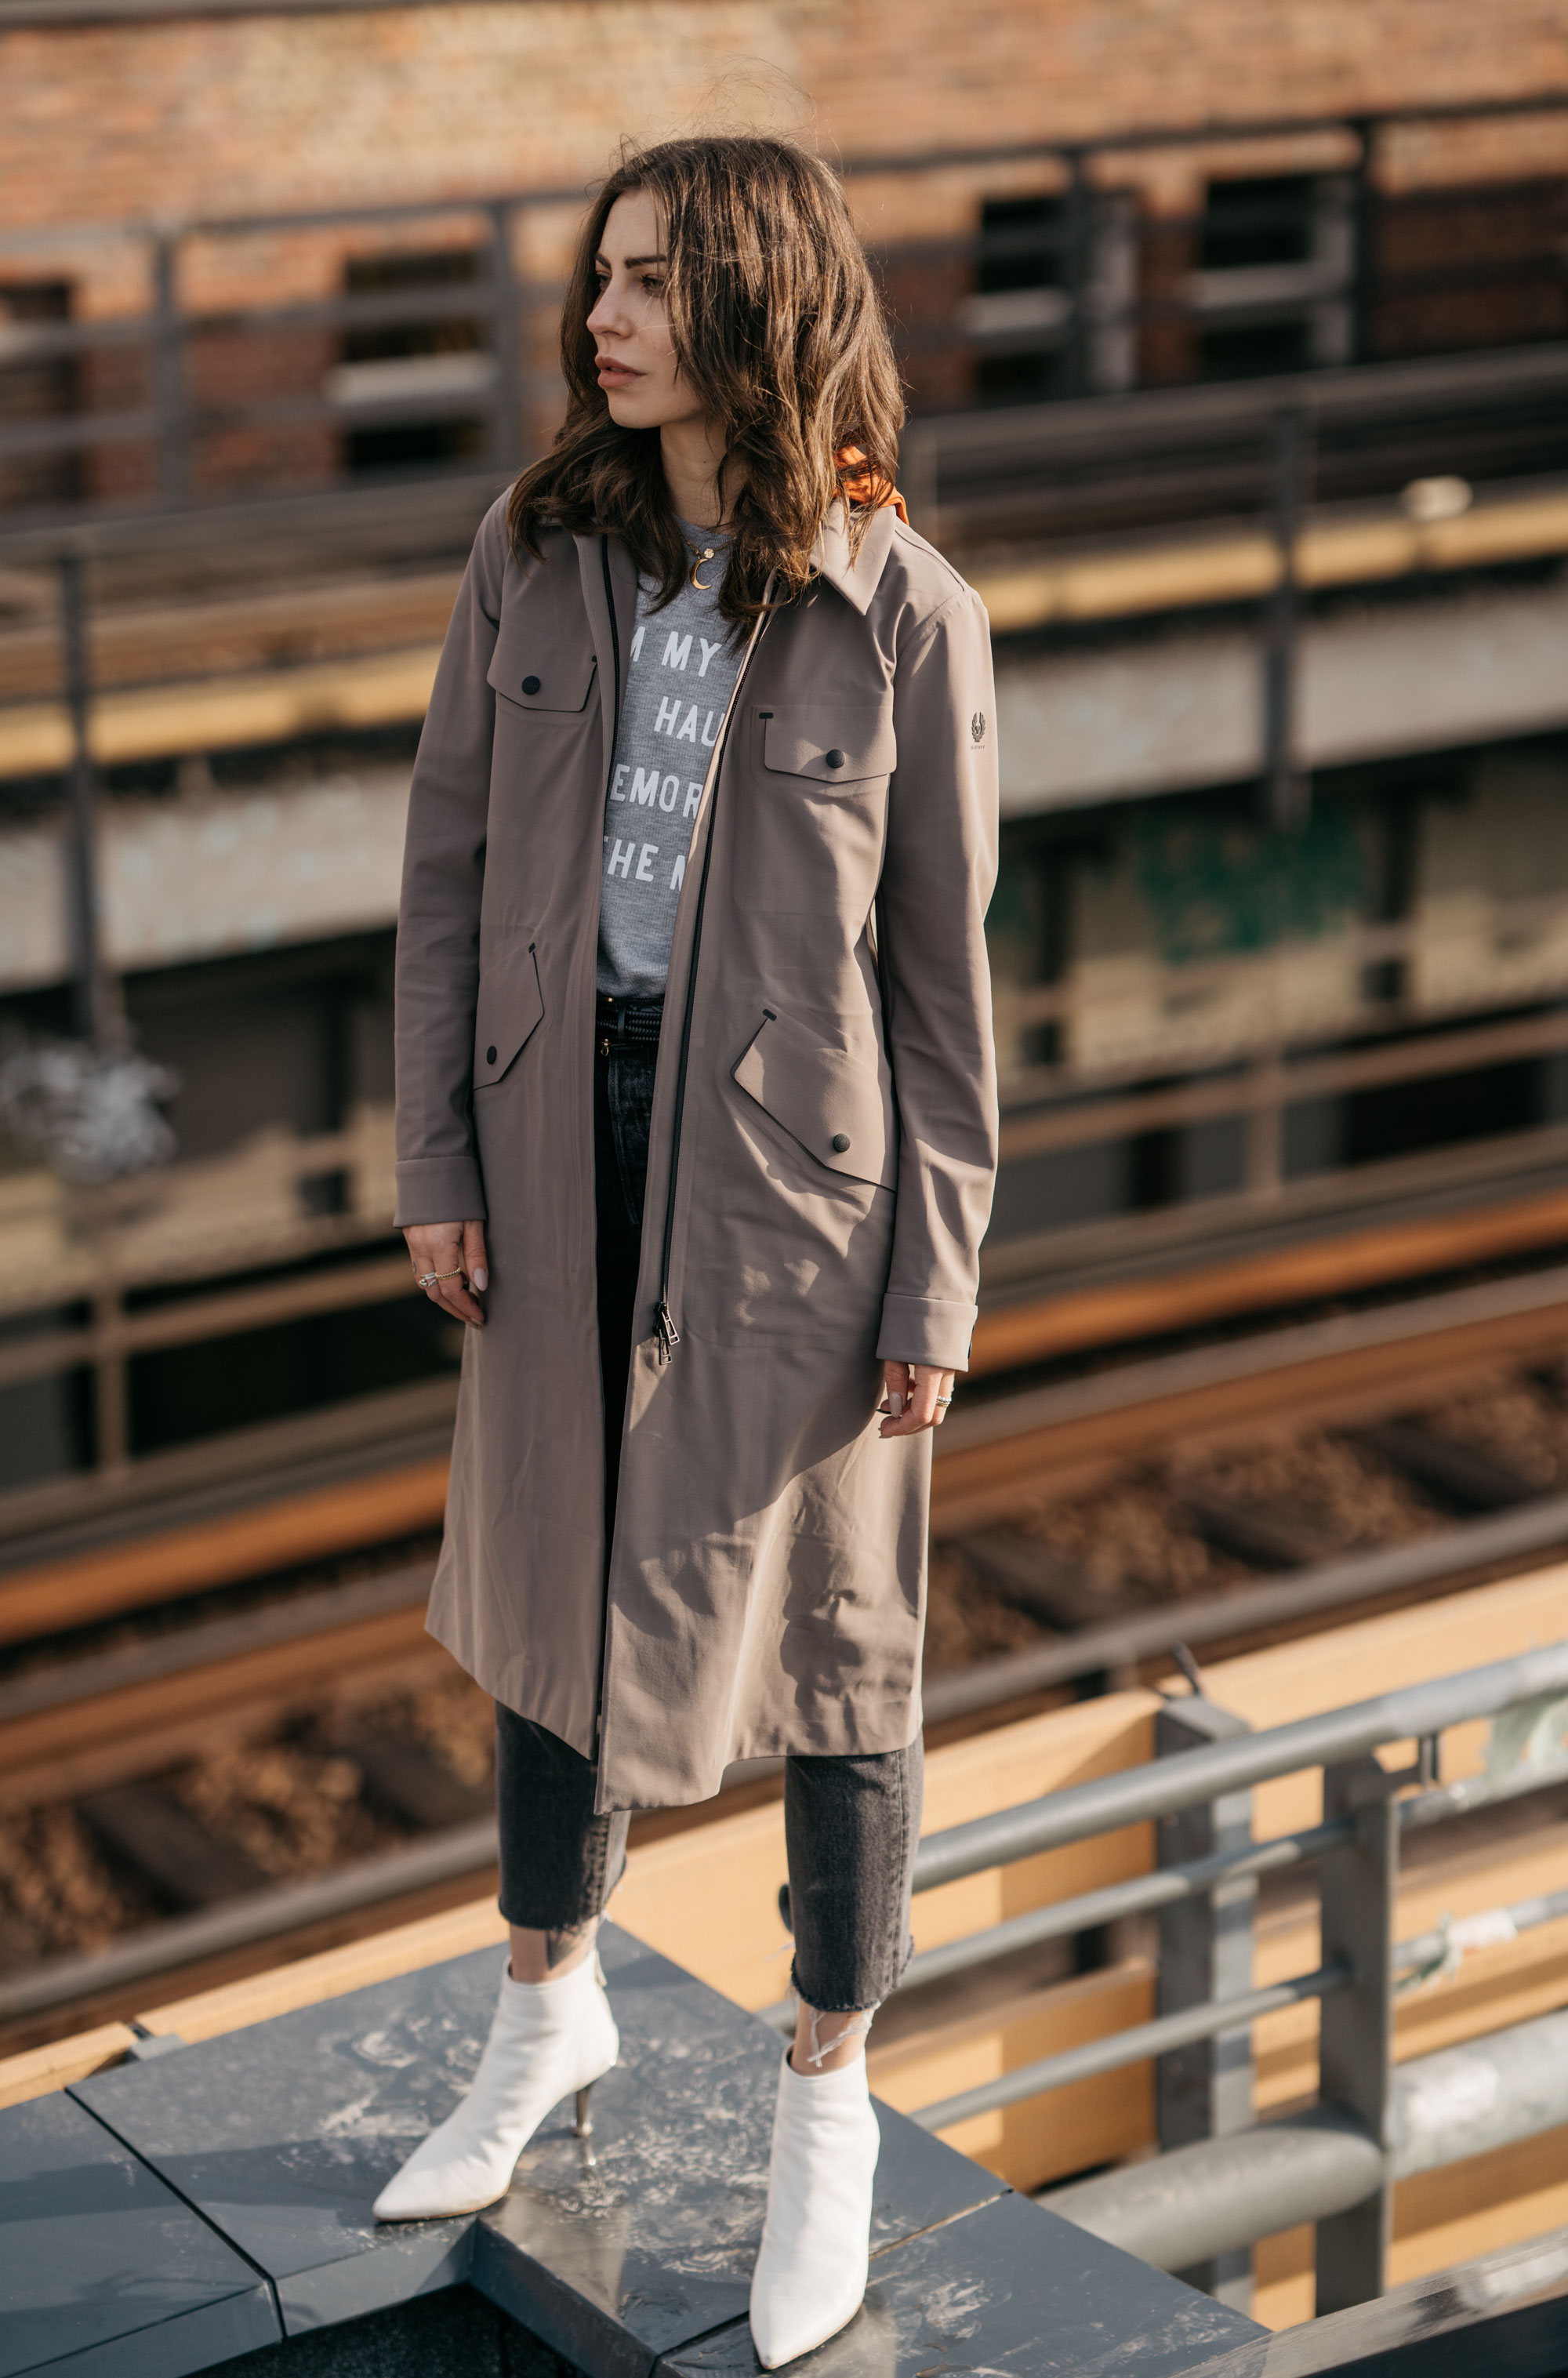 Street Style in Berlin | brands: Belstaff, AGL shoes, Levi's 501 | Trend: rain coat, white boots | BVG | parking lot | shooting | fashion | outfit | ootd